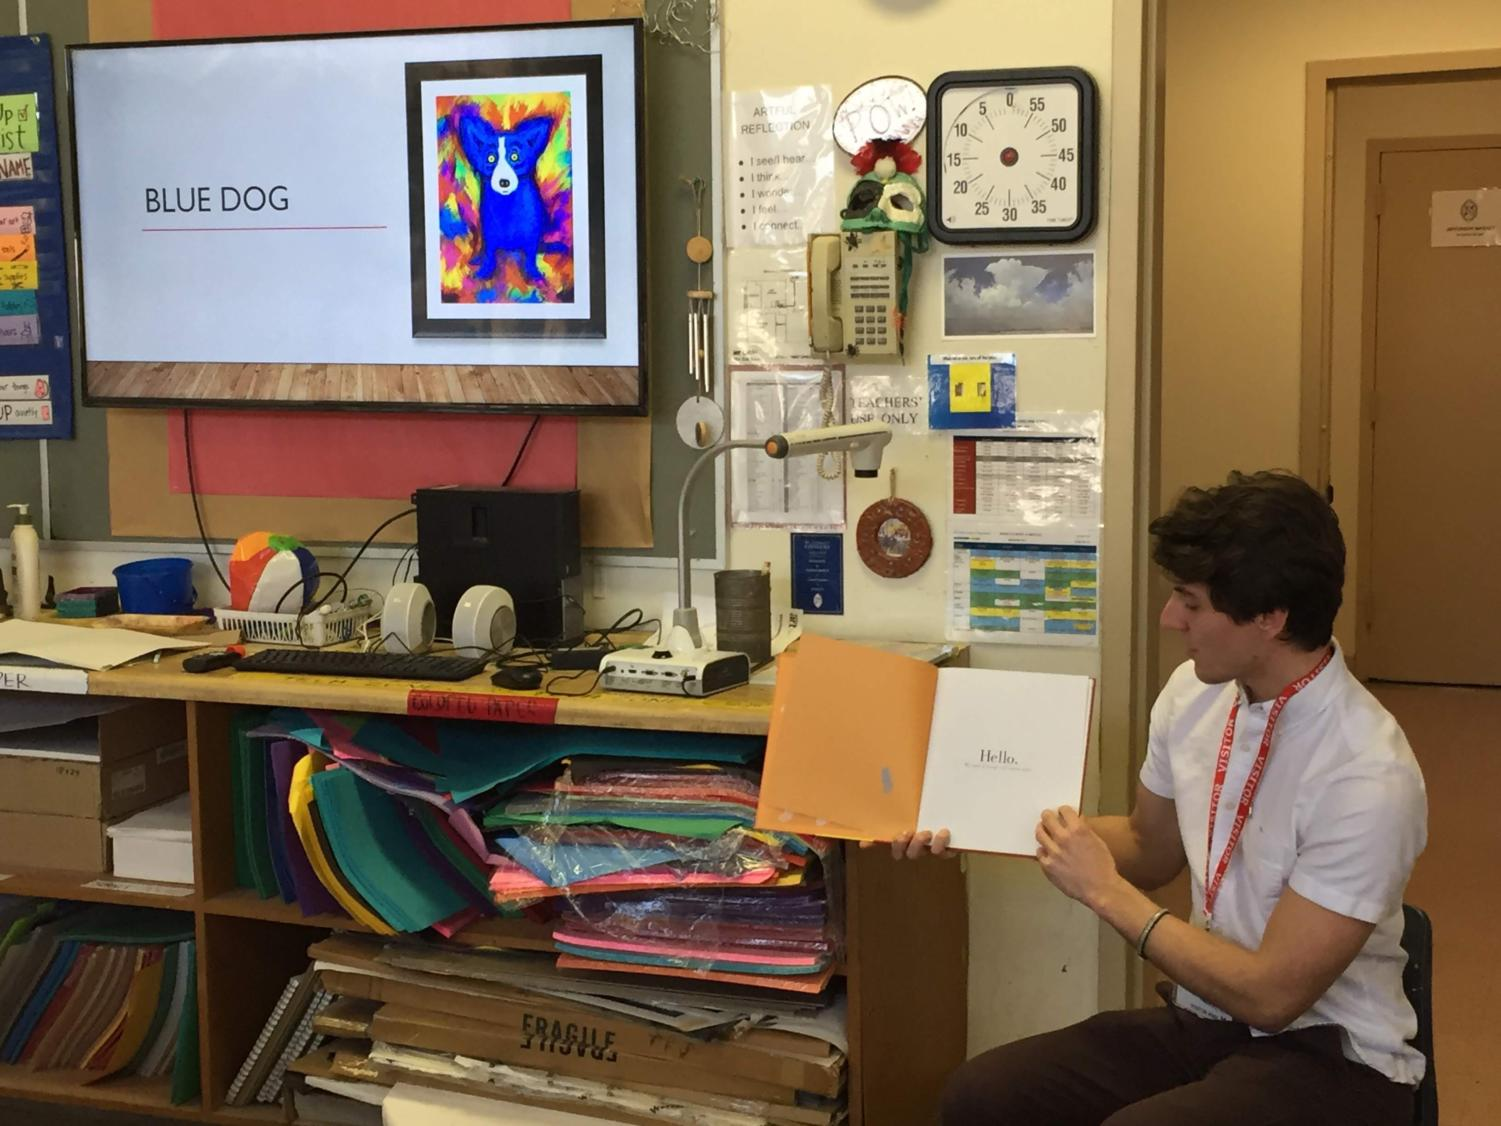 Robert Prasso, new member of Pi Kappa Phi fraternity, reads children's book to students at St. George's Episcopal Elementary School. Courtesy of Pamela Skehan.